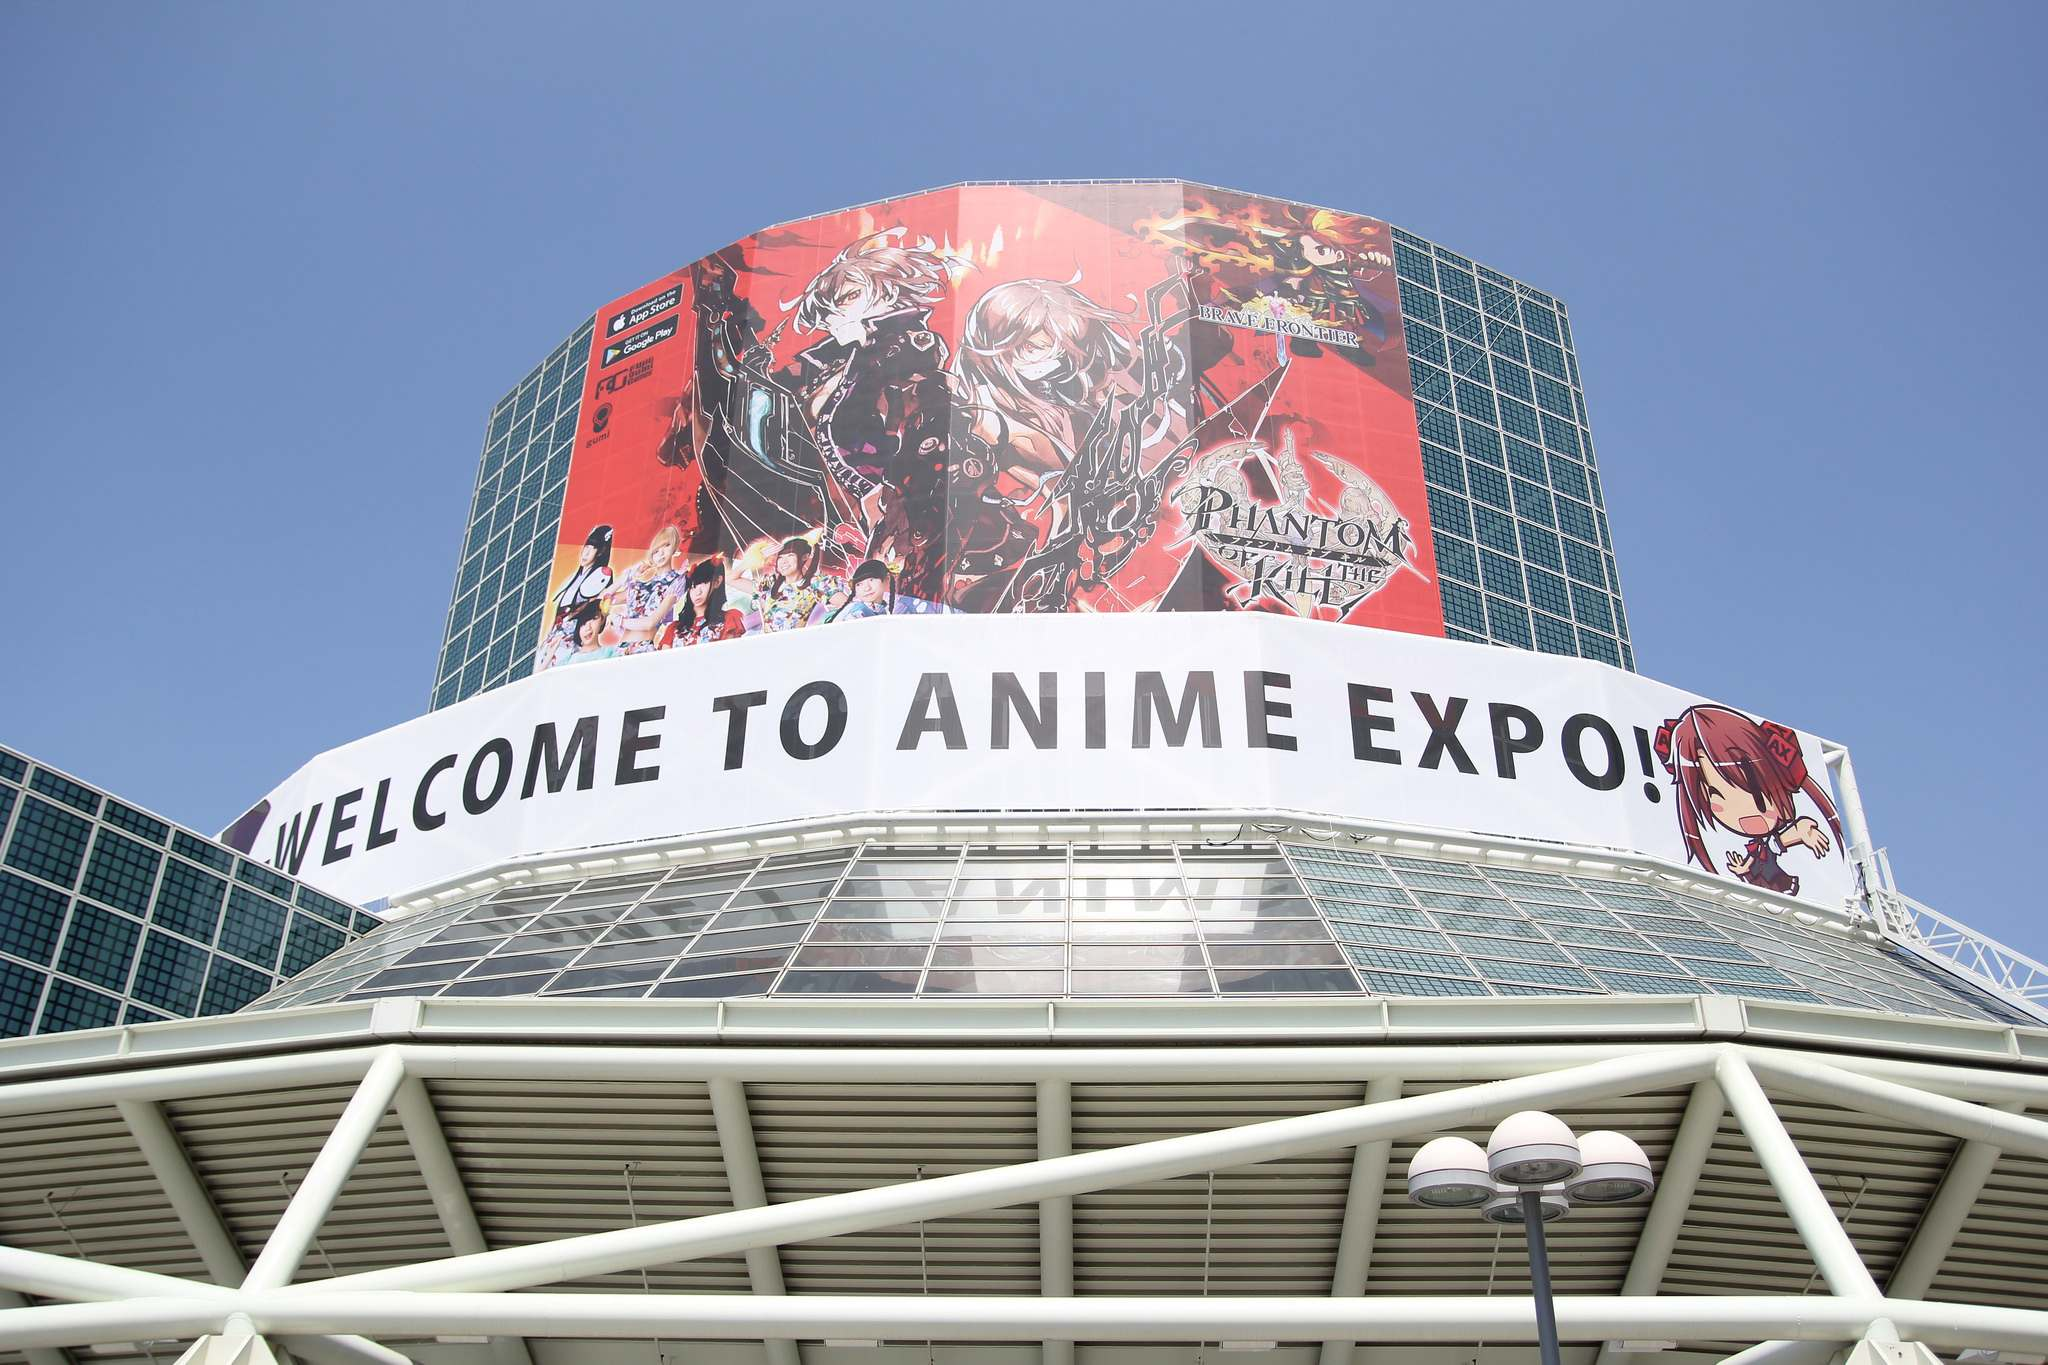 ax20163 Anime Expo 2016 in Los Angeles Convention Center